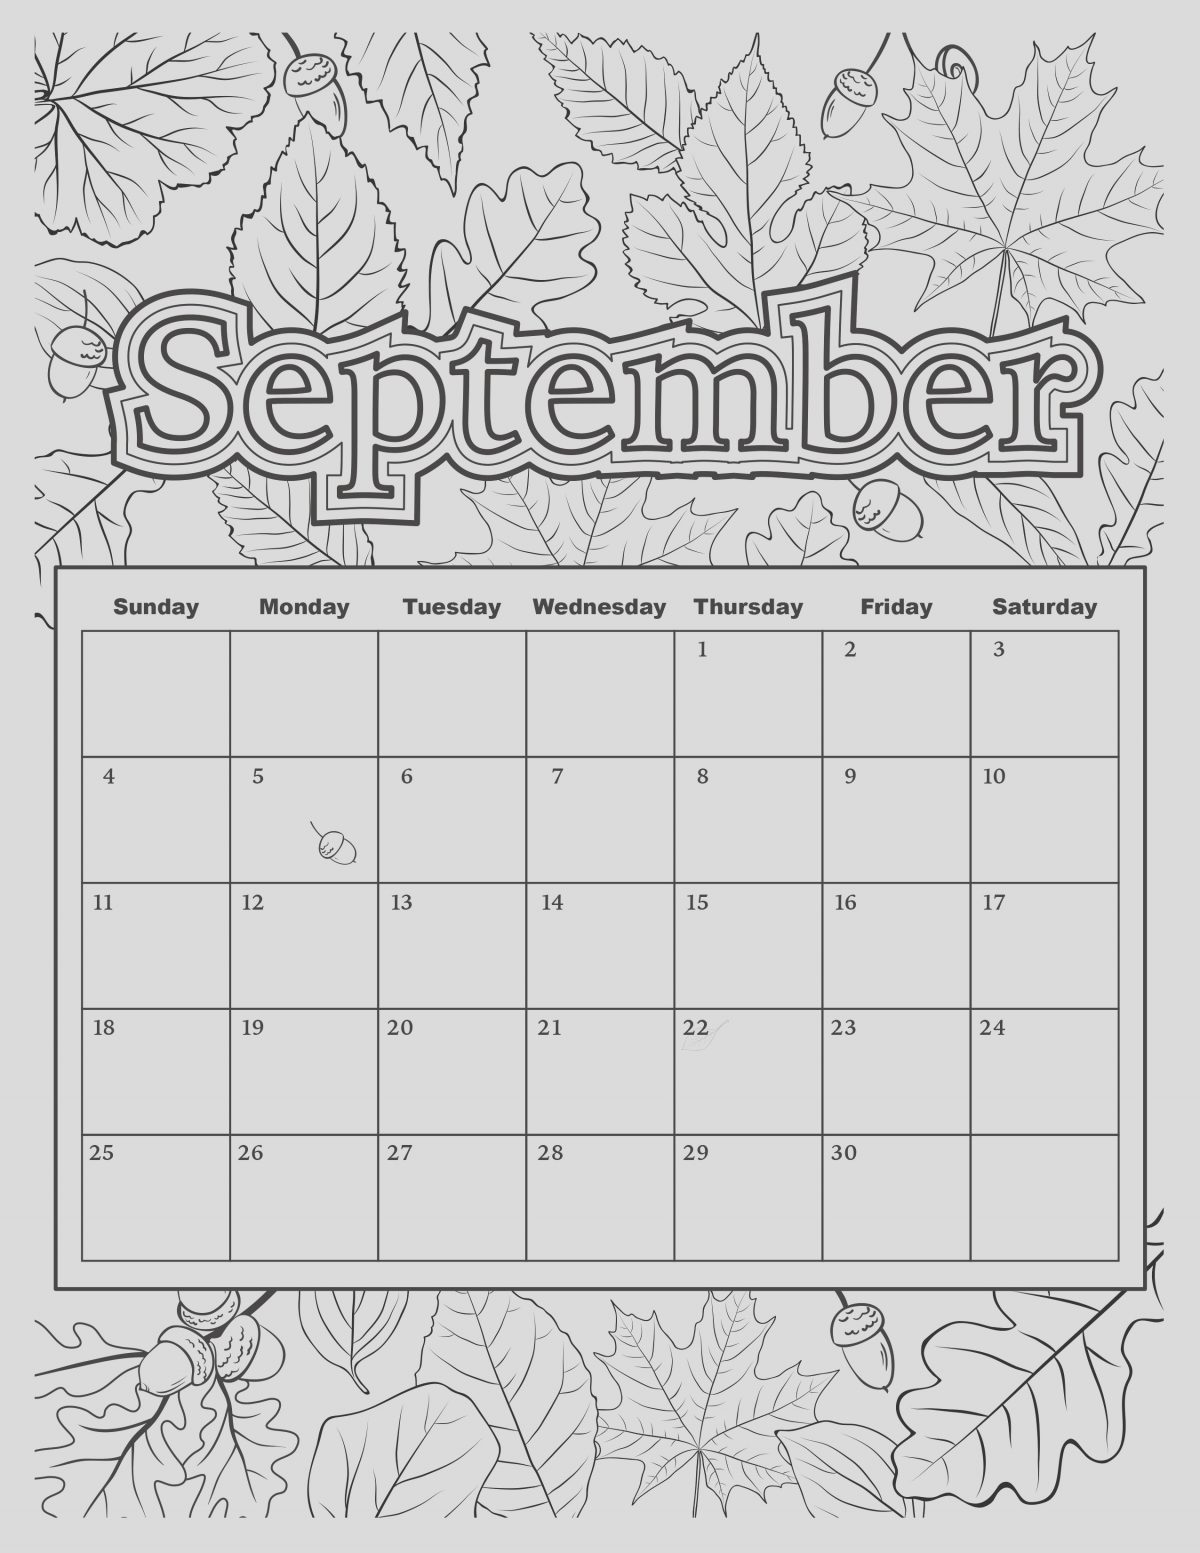 Free Printable Coloring Calendar Awesome Free Download Coloring Pages From Popular Adult Coloring